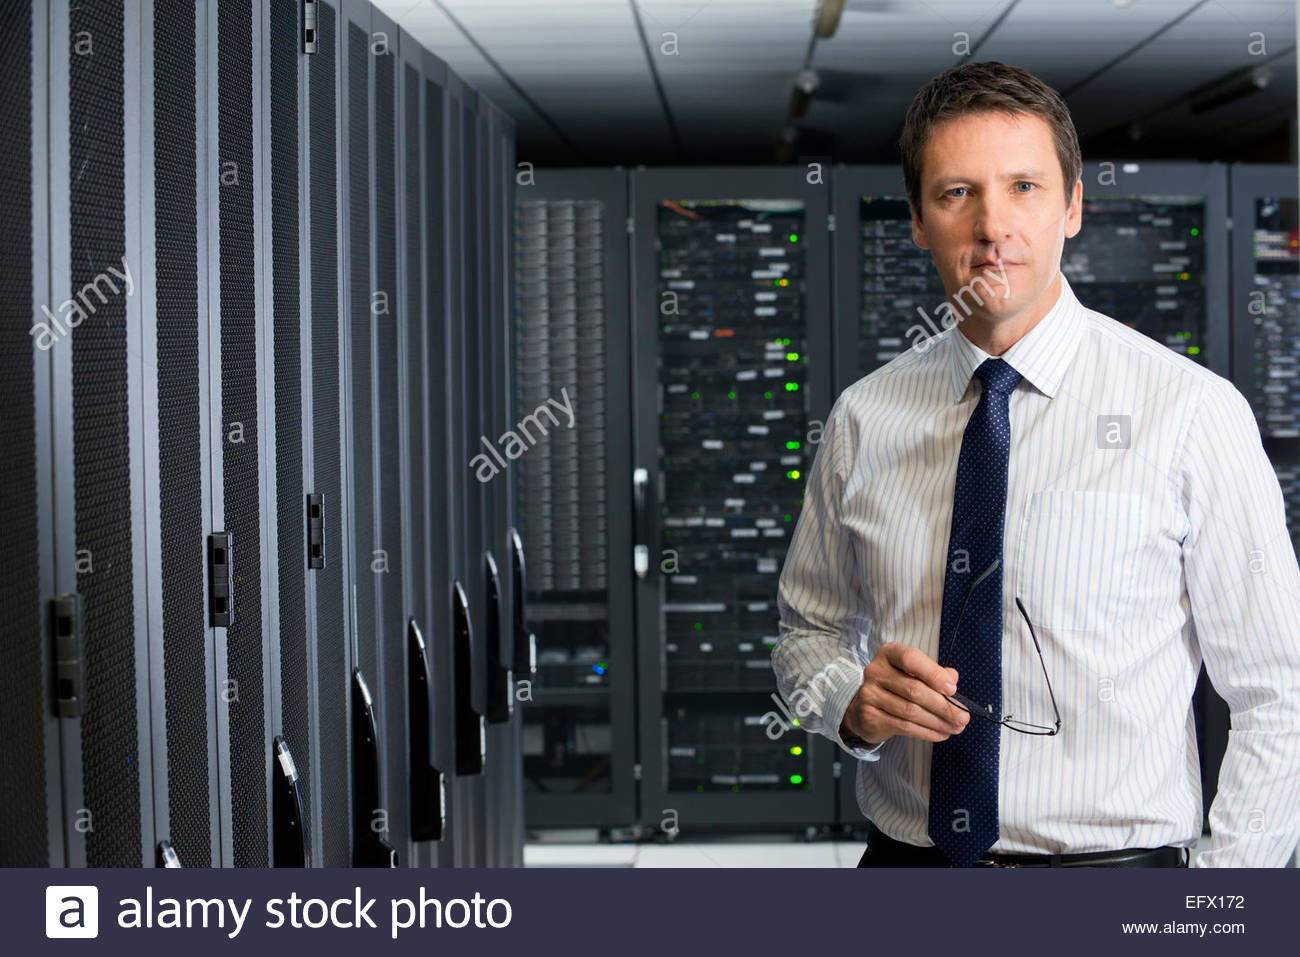 Manager holding glasses, looking at camera, in server room - Stock Image